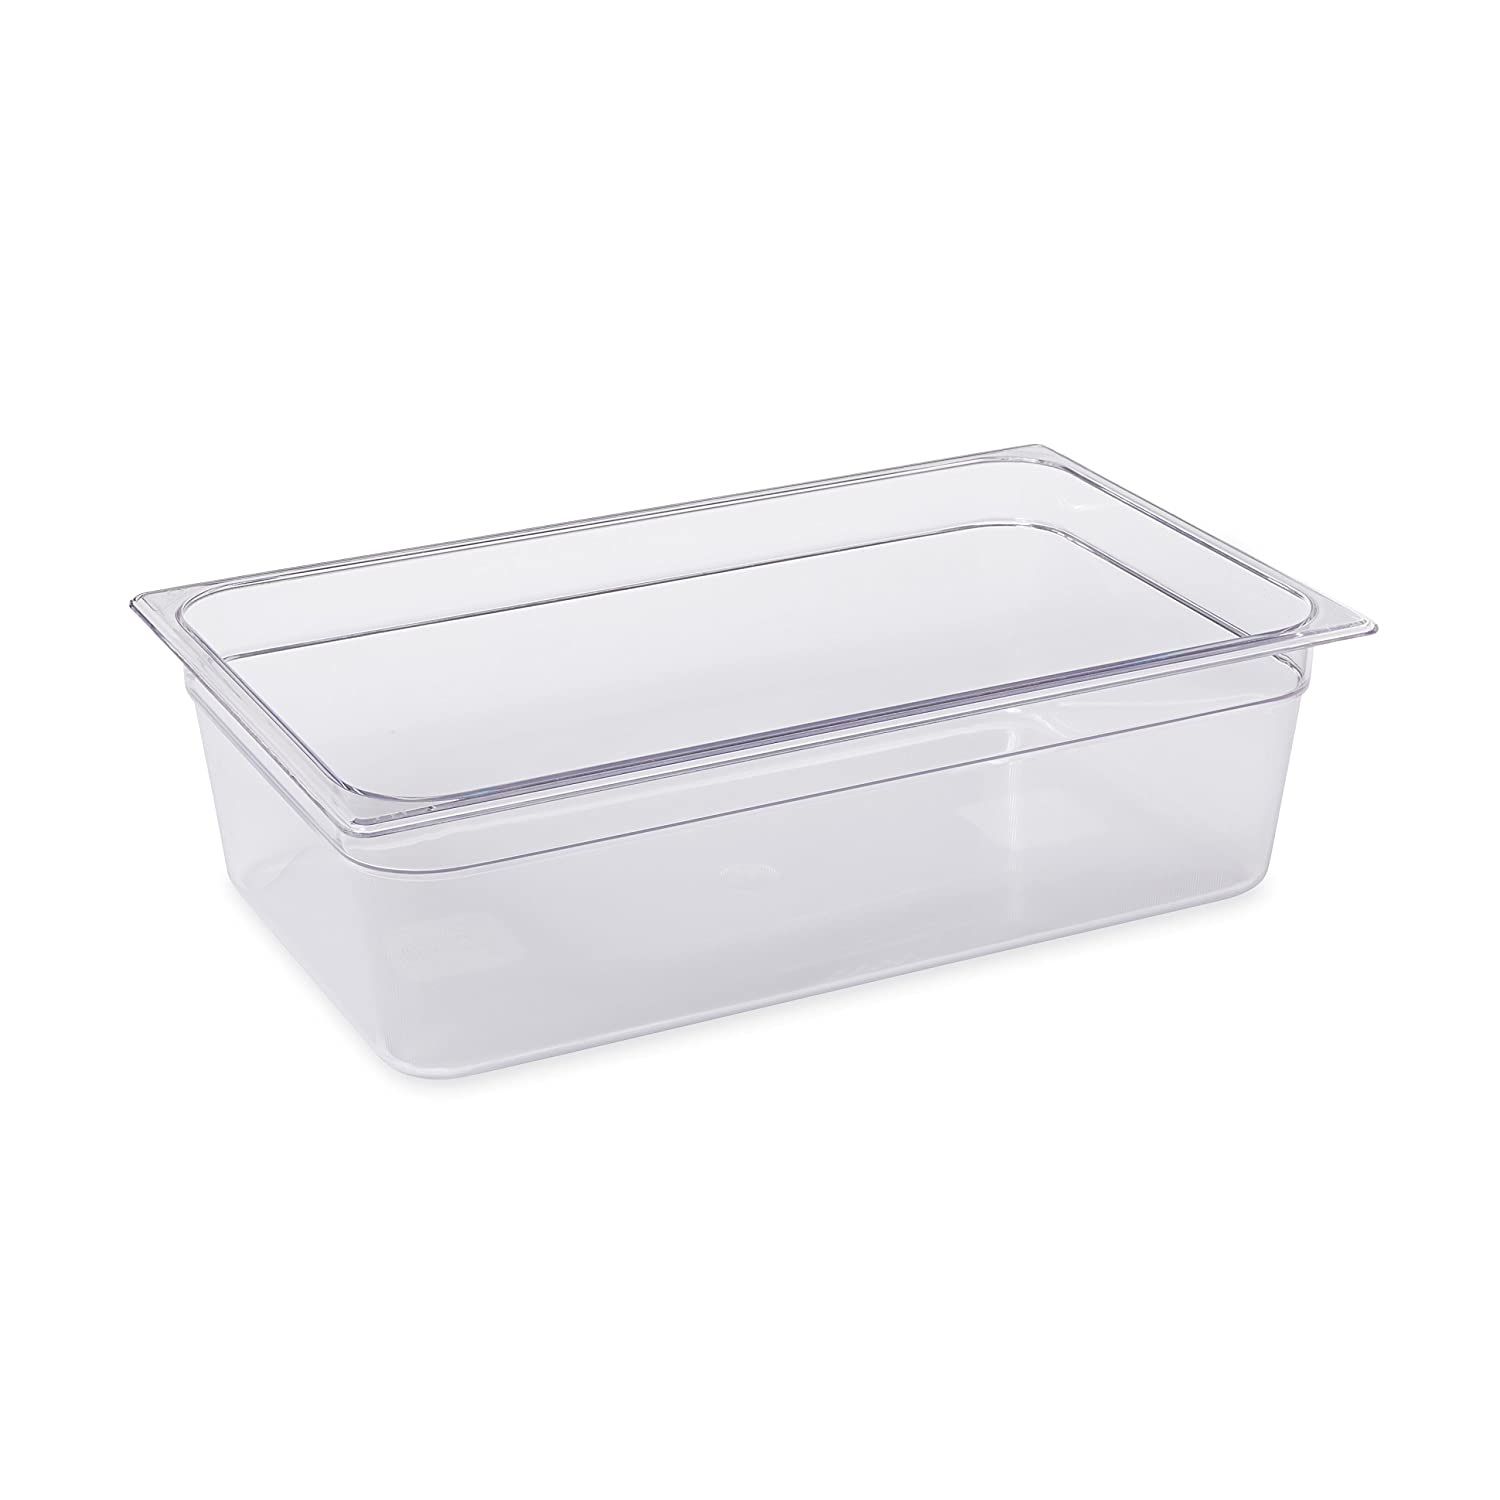 Rubbermaid Commercial Products Cold Food Insert Pan for Restaurants/Kitchens/Cafeterias, Full Size, 6 Inches Deep, Clear (FG132P00CLR)